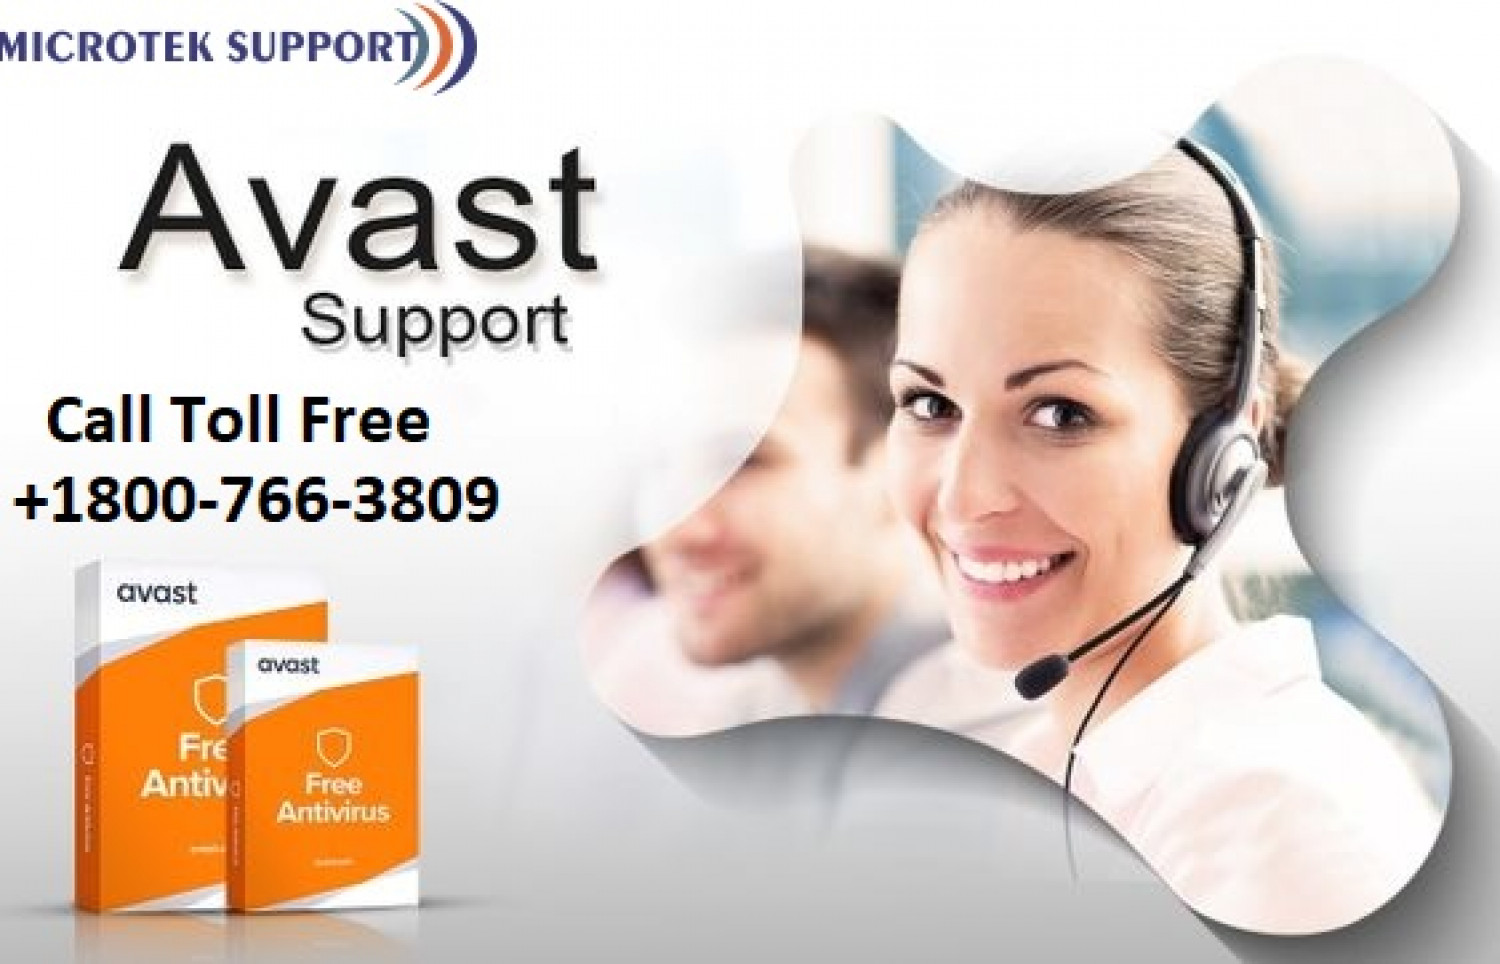 Avast Customer Care Support Number Infographic